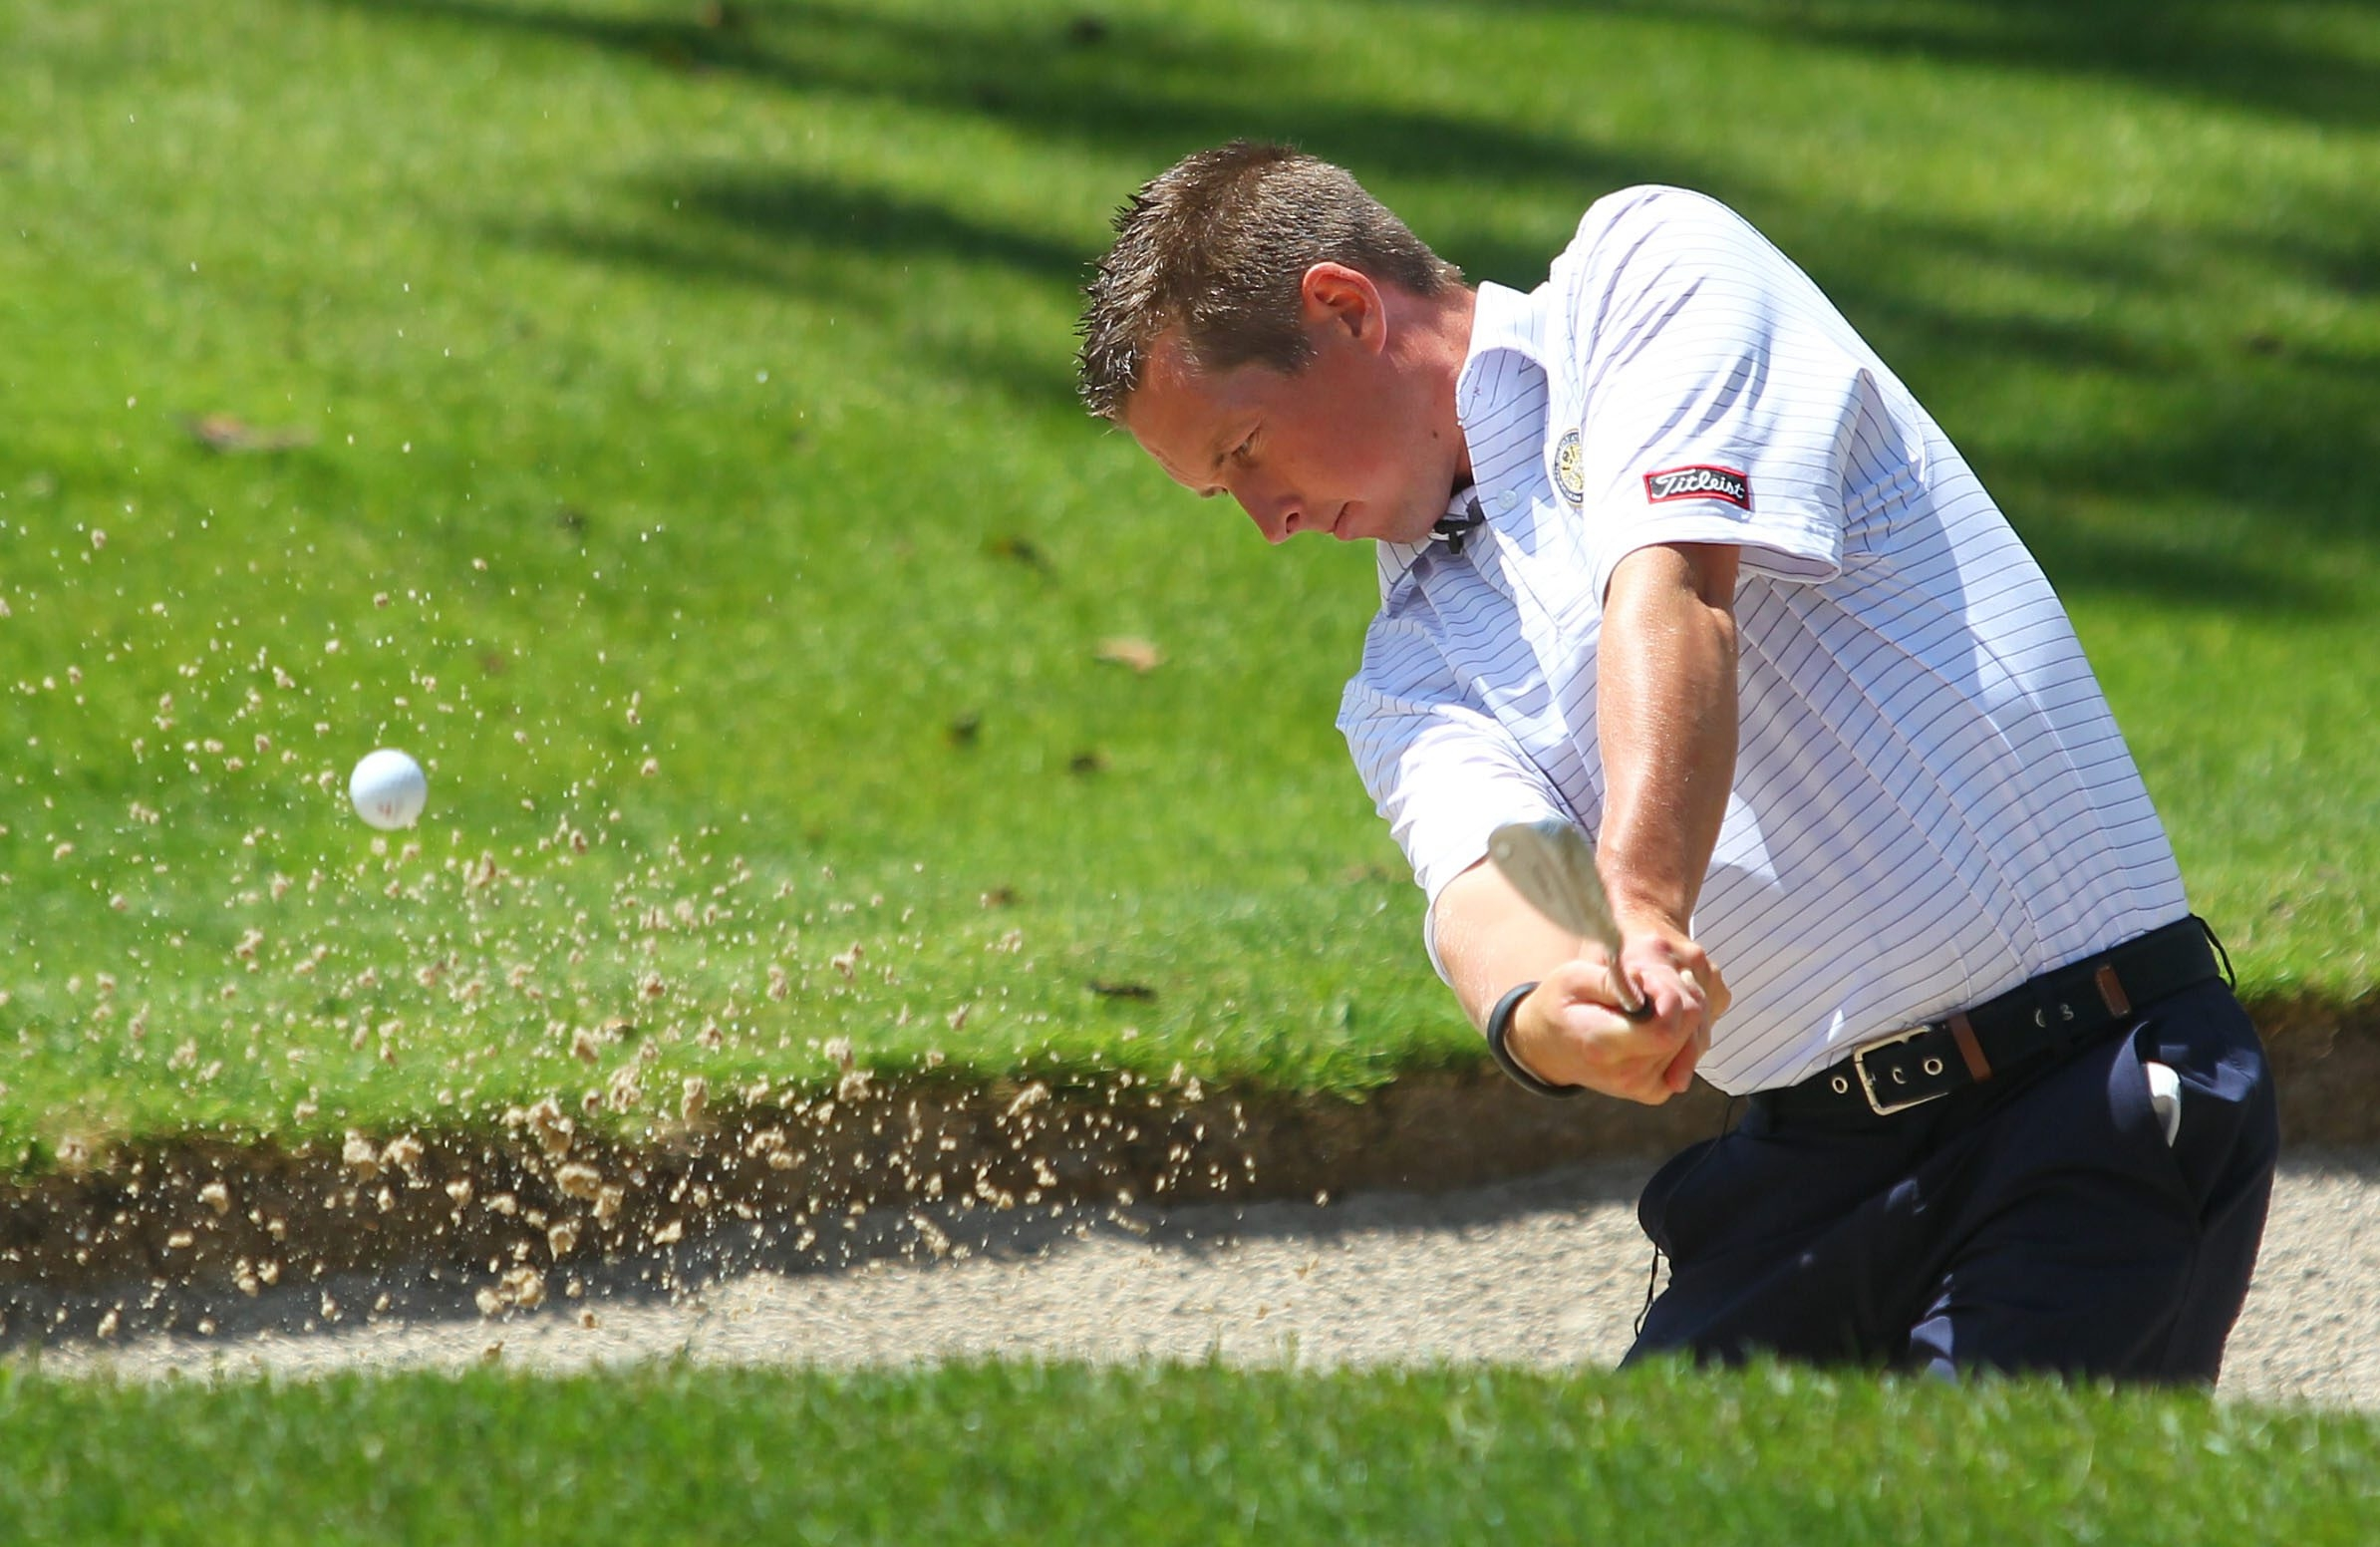 East Aurora Country Club professional Chris Kulinski displays the proper form when hitting from a green side bunker.